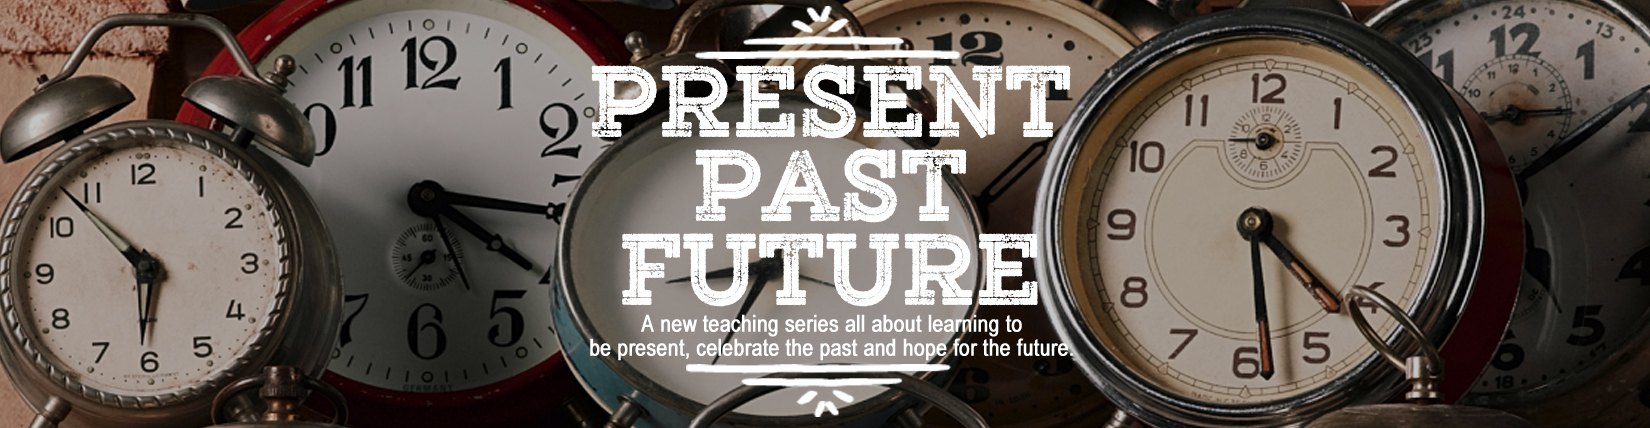 PRESENT + PAST + FUTURE: Week 3- VISION SUNDAY